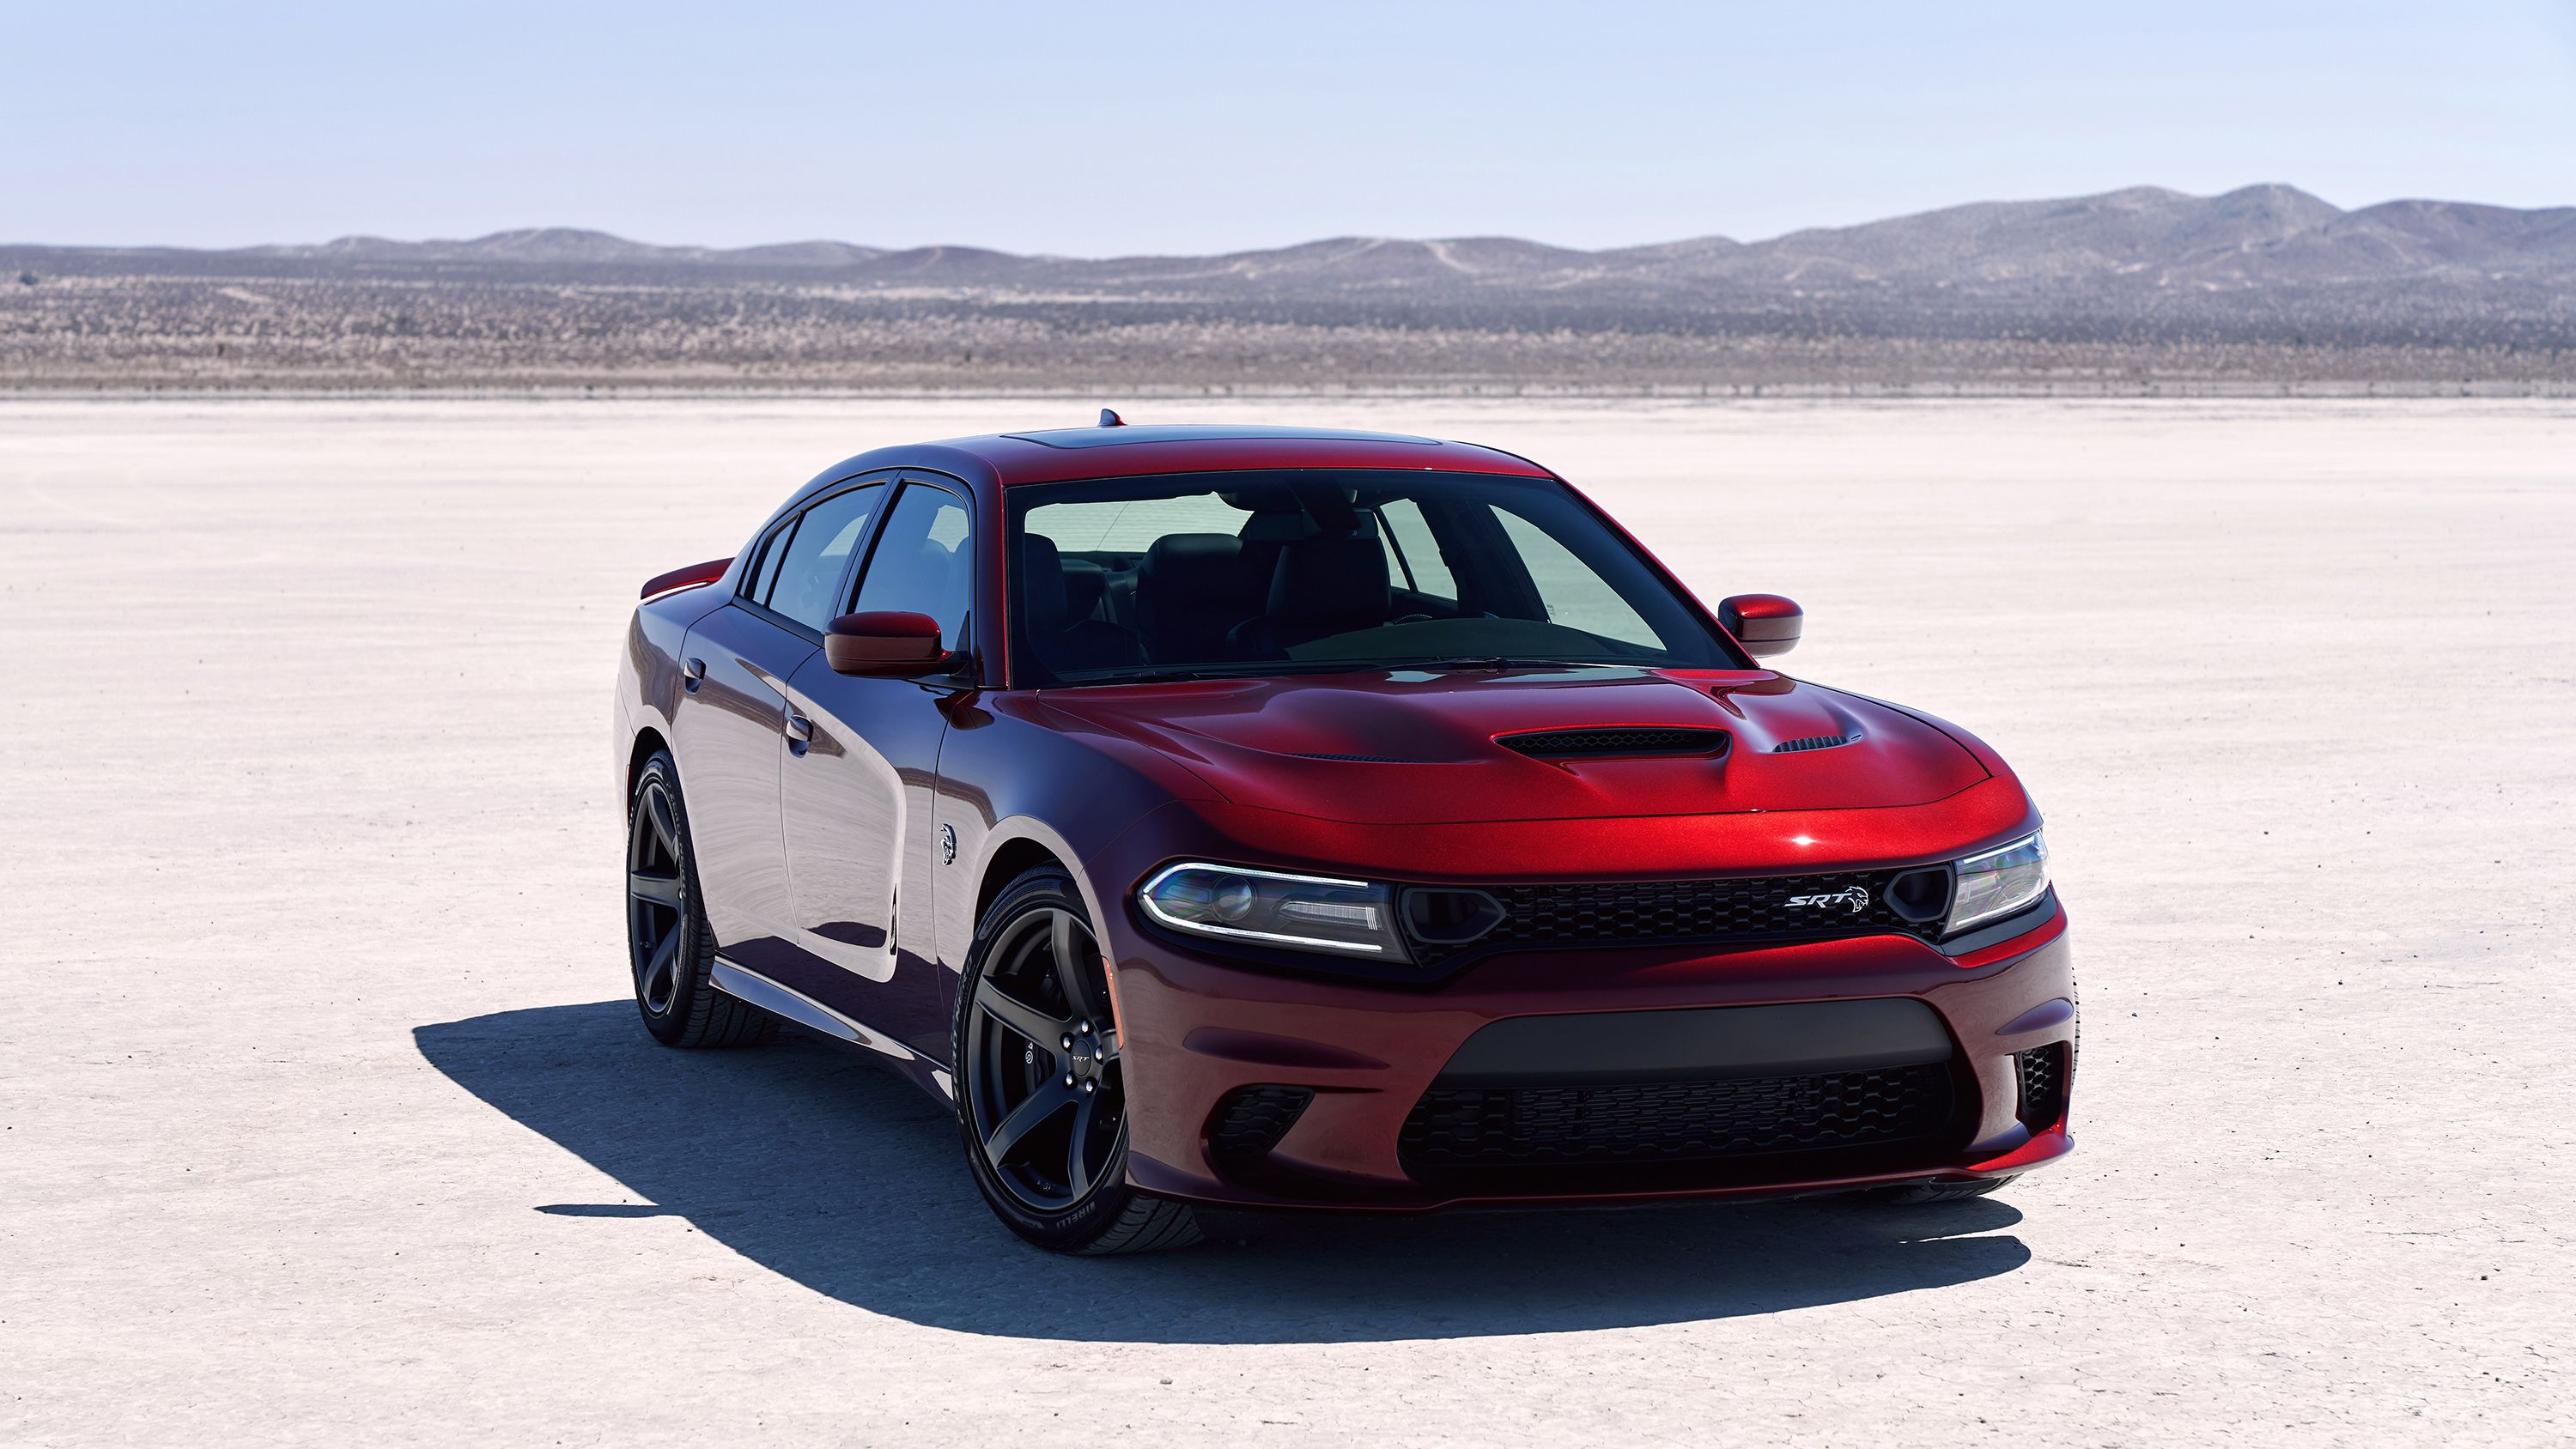 Dodge Charger Hellcat Wallpapers Top Free Dodge Charger Hellcat Backgrounds Wallpaperaccess